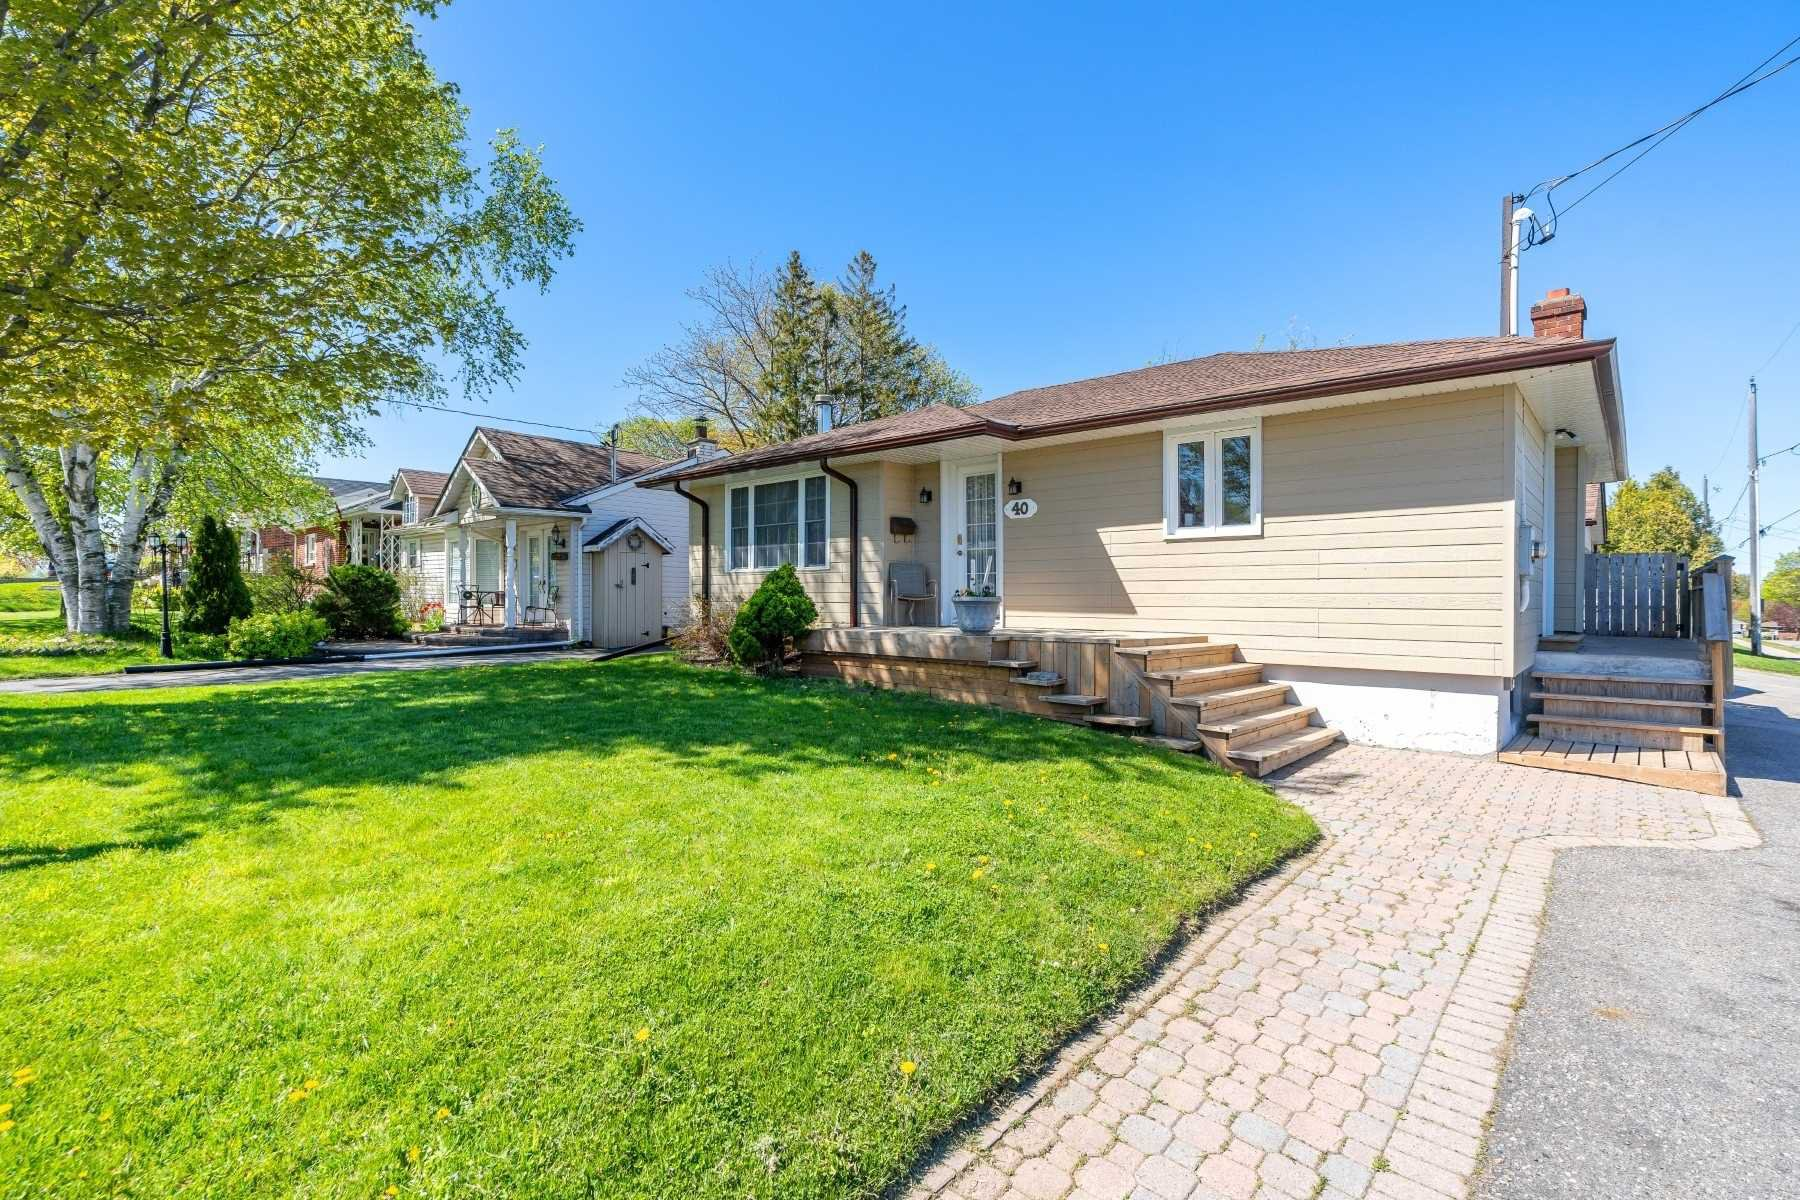 Photo 3: Photos: 40 Eastlawn Street in Oshawa: Donevan House (Bungalow) for sale : MLS®# E4769026